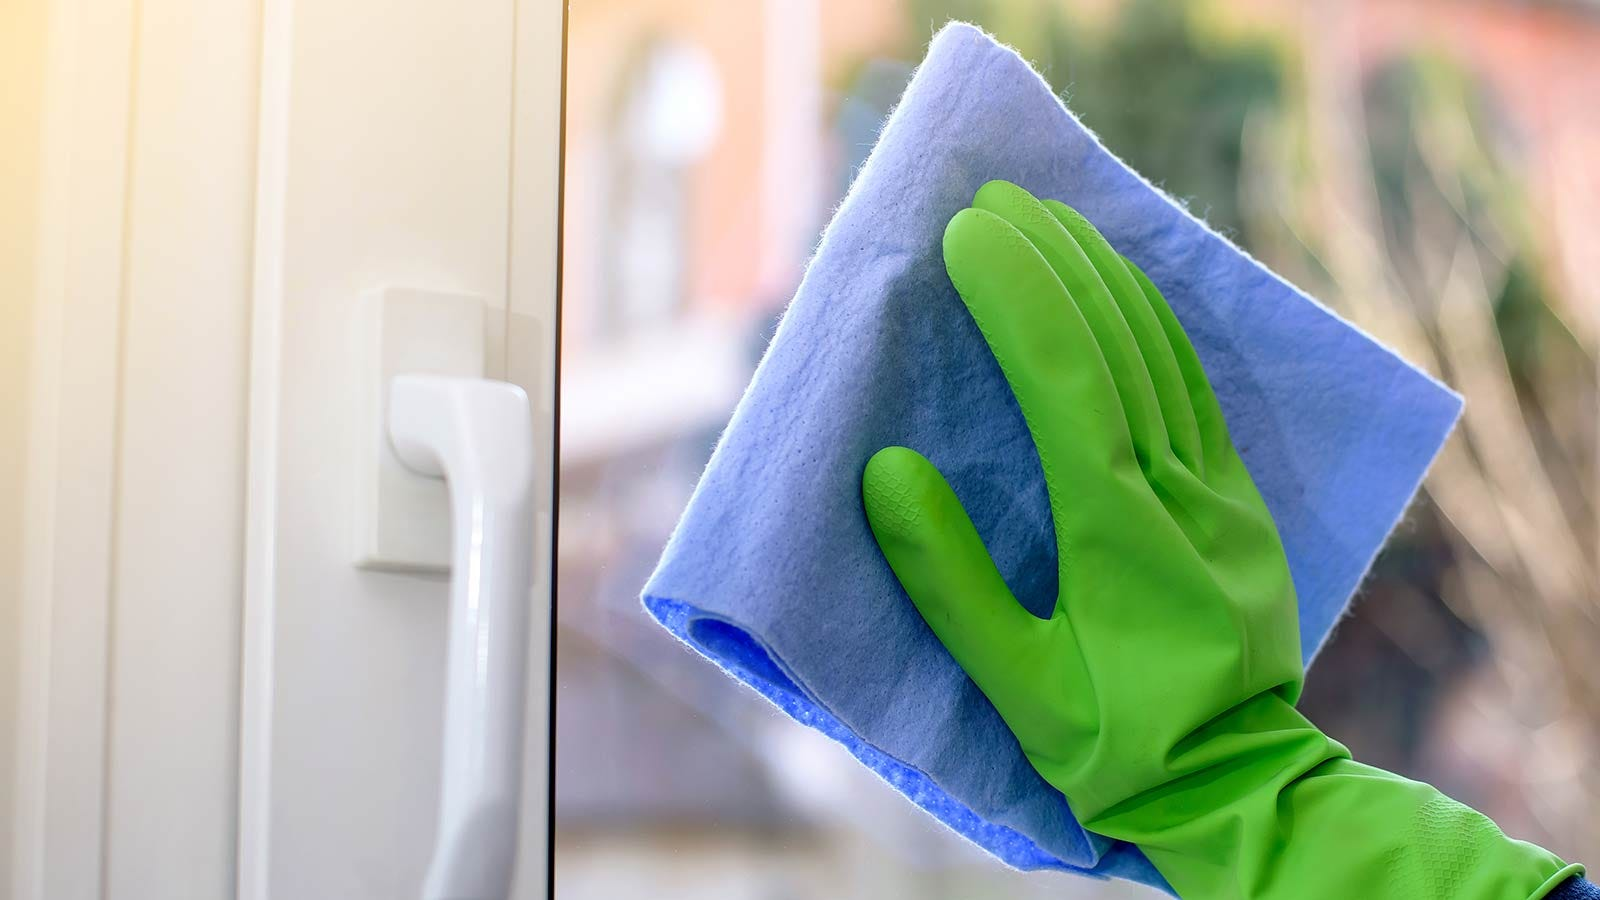 A gloved hand cleaning a glass door with a cloth.